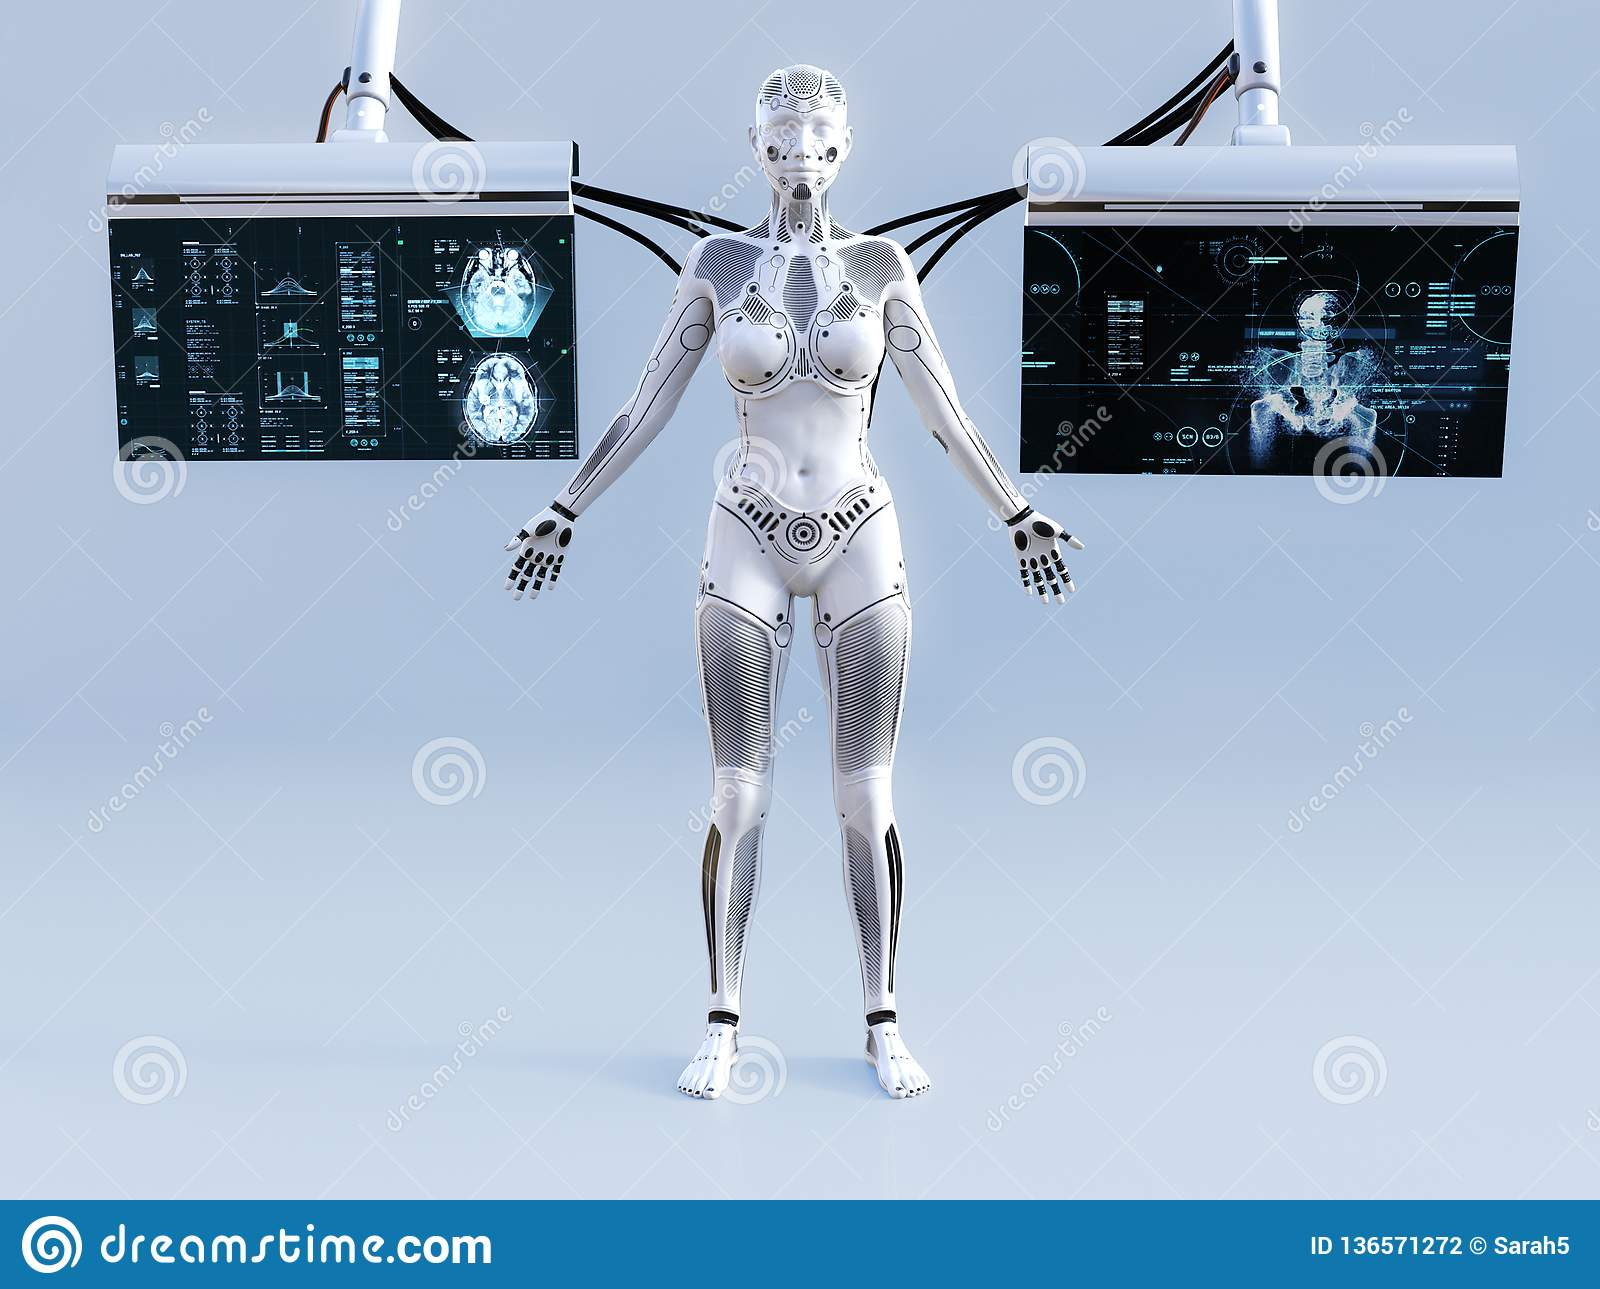 3D rendering of female robot connected to screens